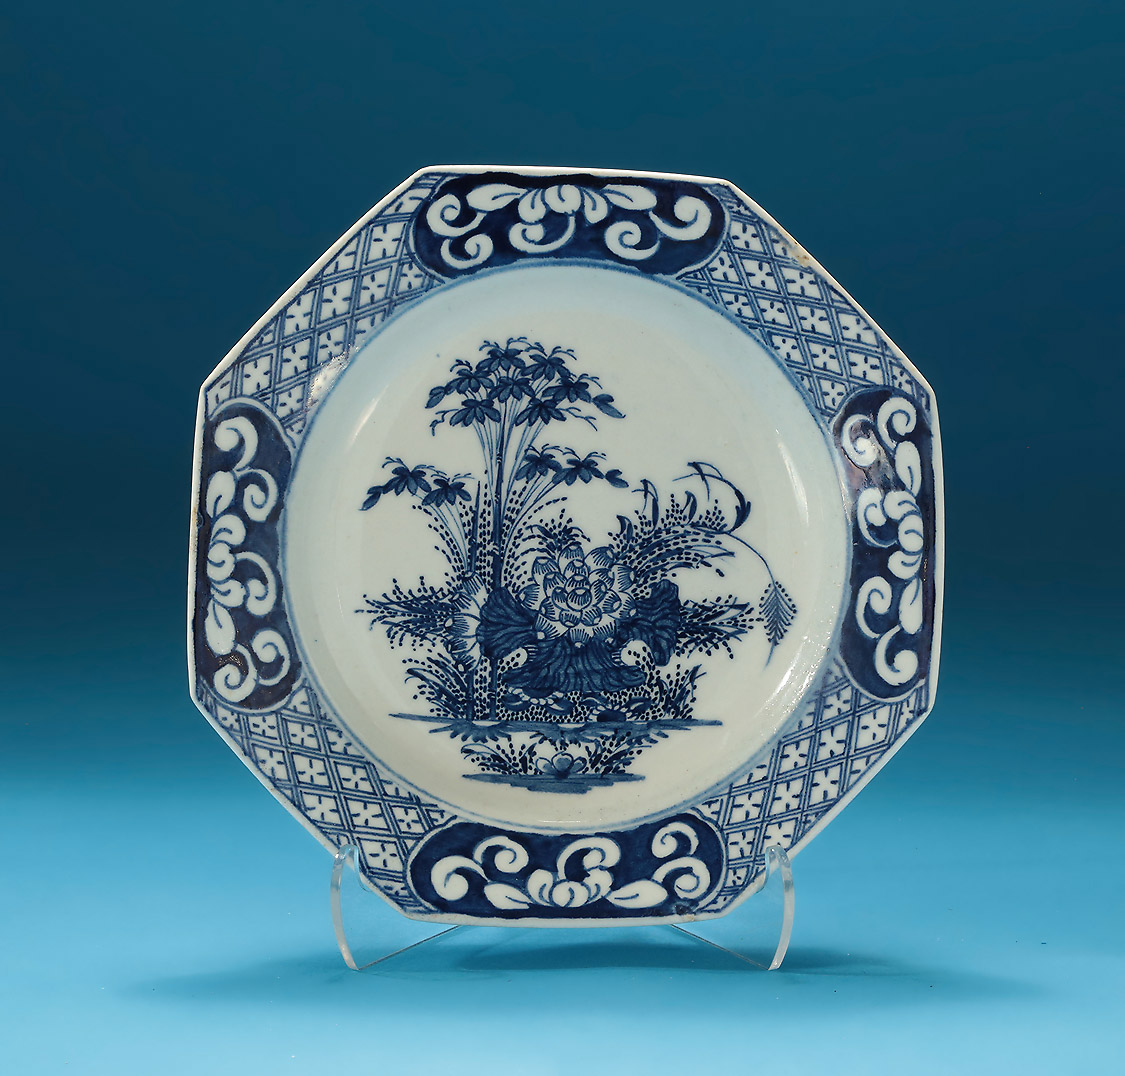 Bow Soft Paste Porcelain Bluel & White Dessert Dish, England, c1760